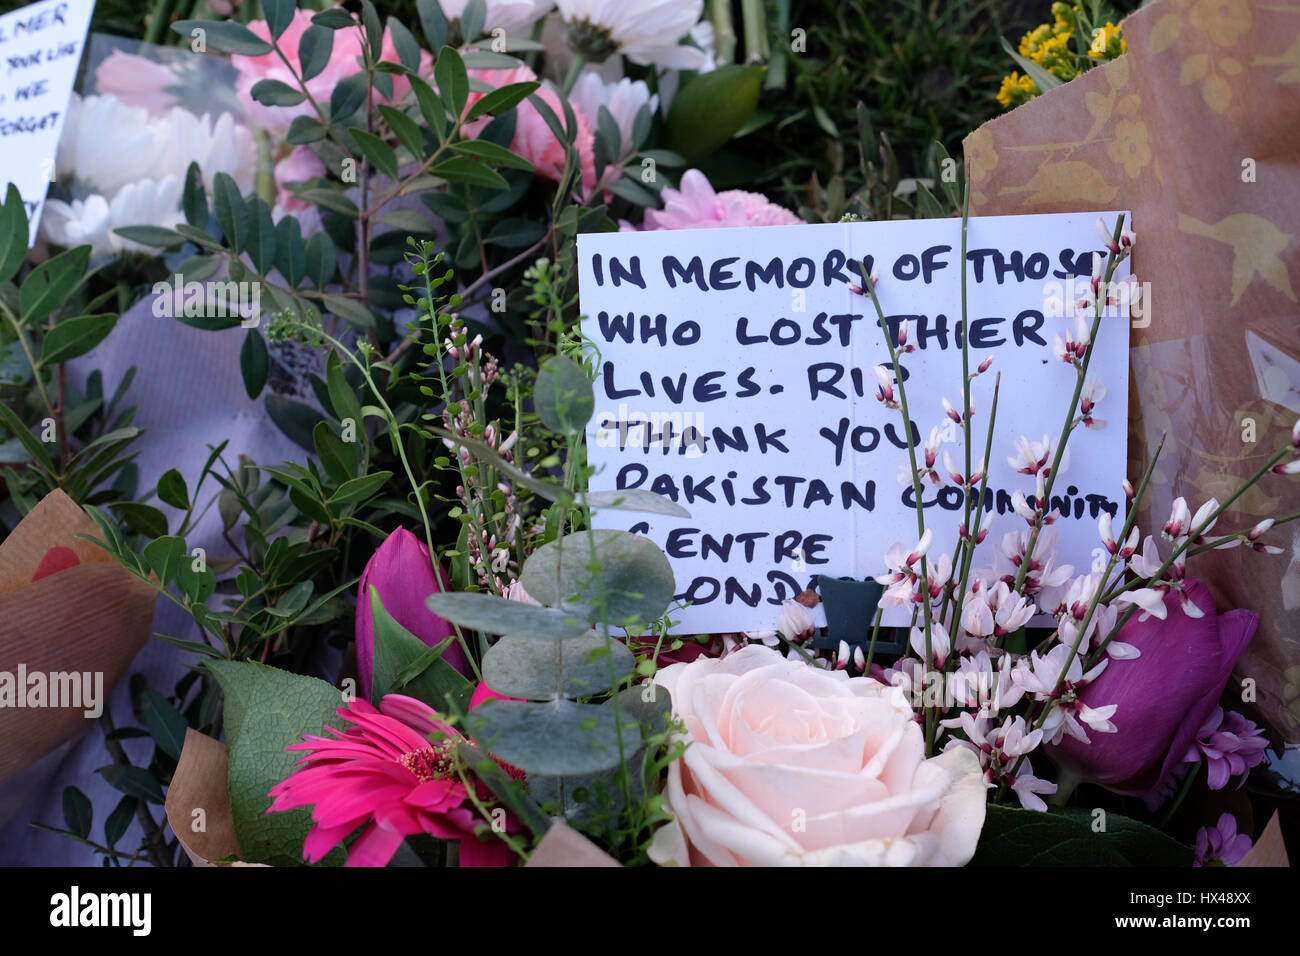 London, UK. 24th March 2017. Floral tributes and messages to the victims of Westminster terror attack, Westminster, - Stock Image